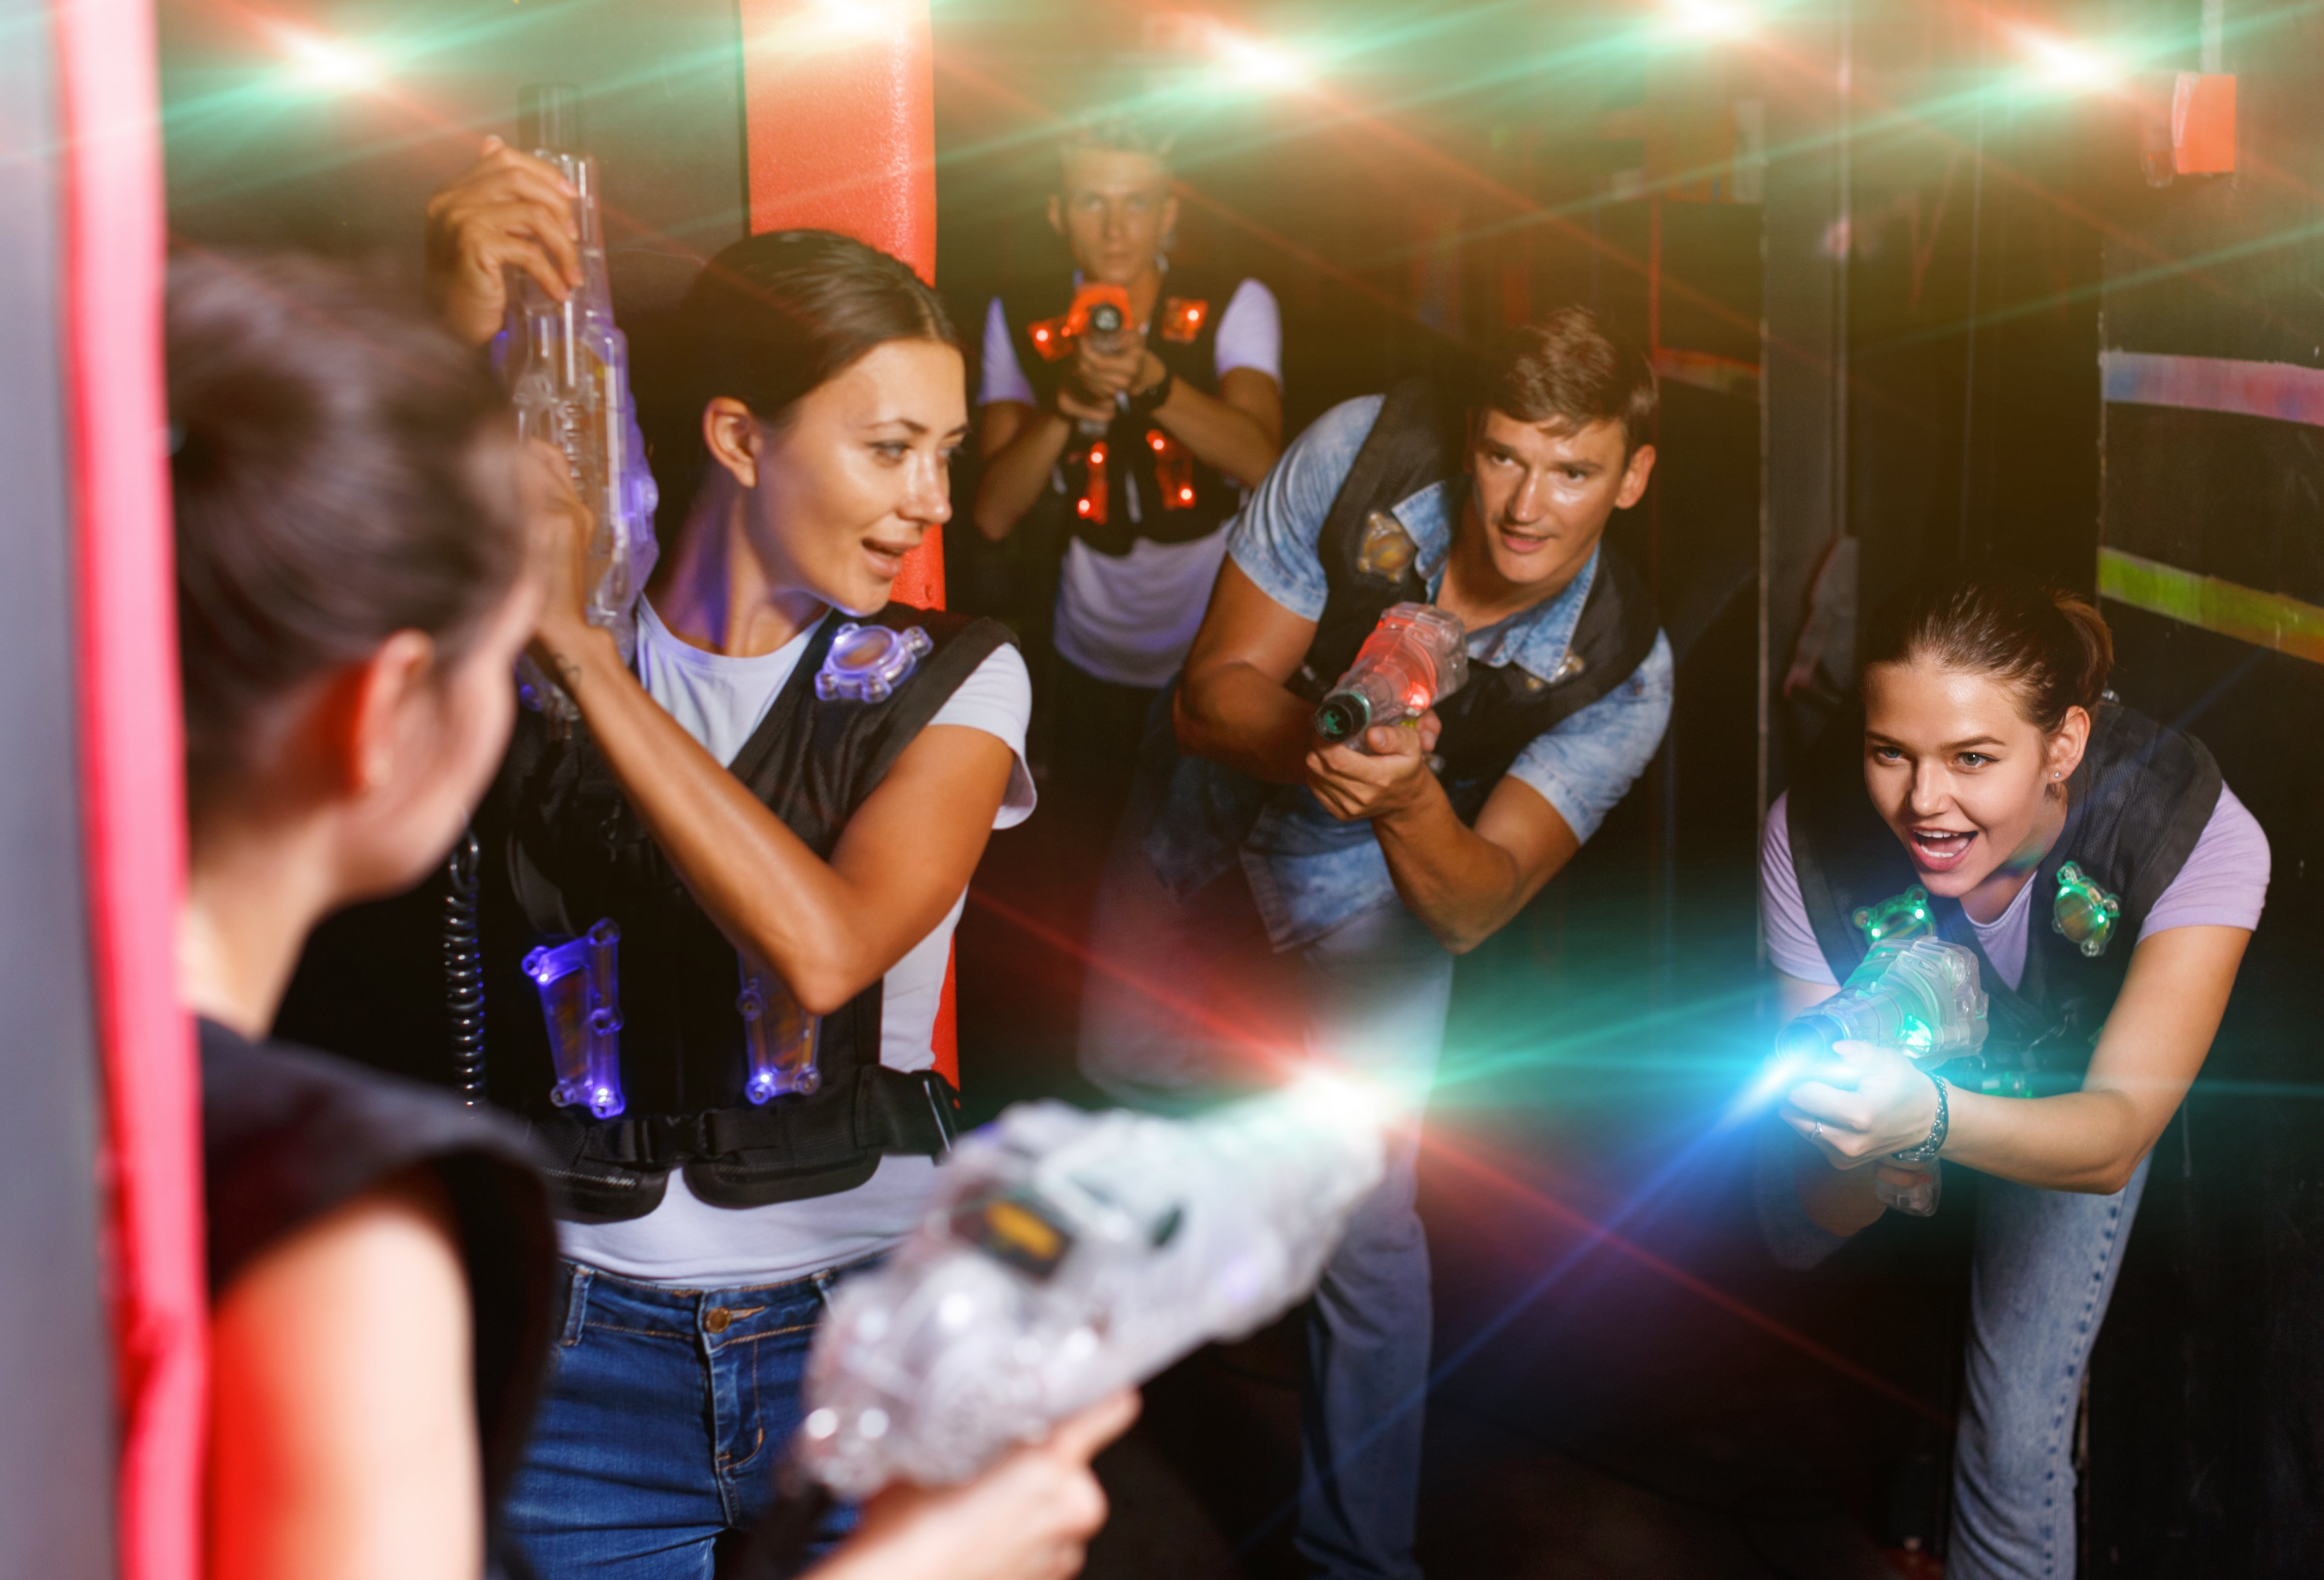 Update Your Laser Tag Center With Cutting Edge Technology